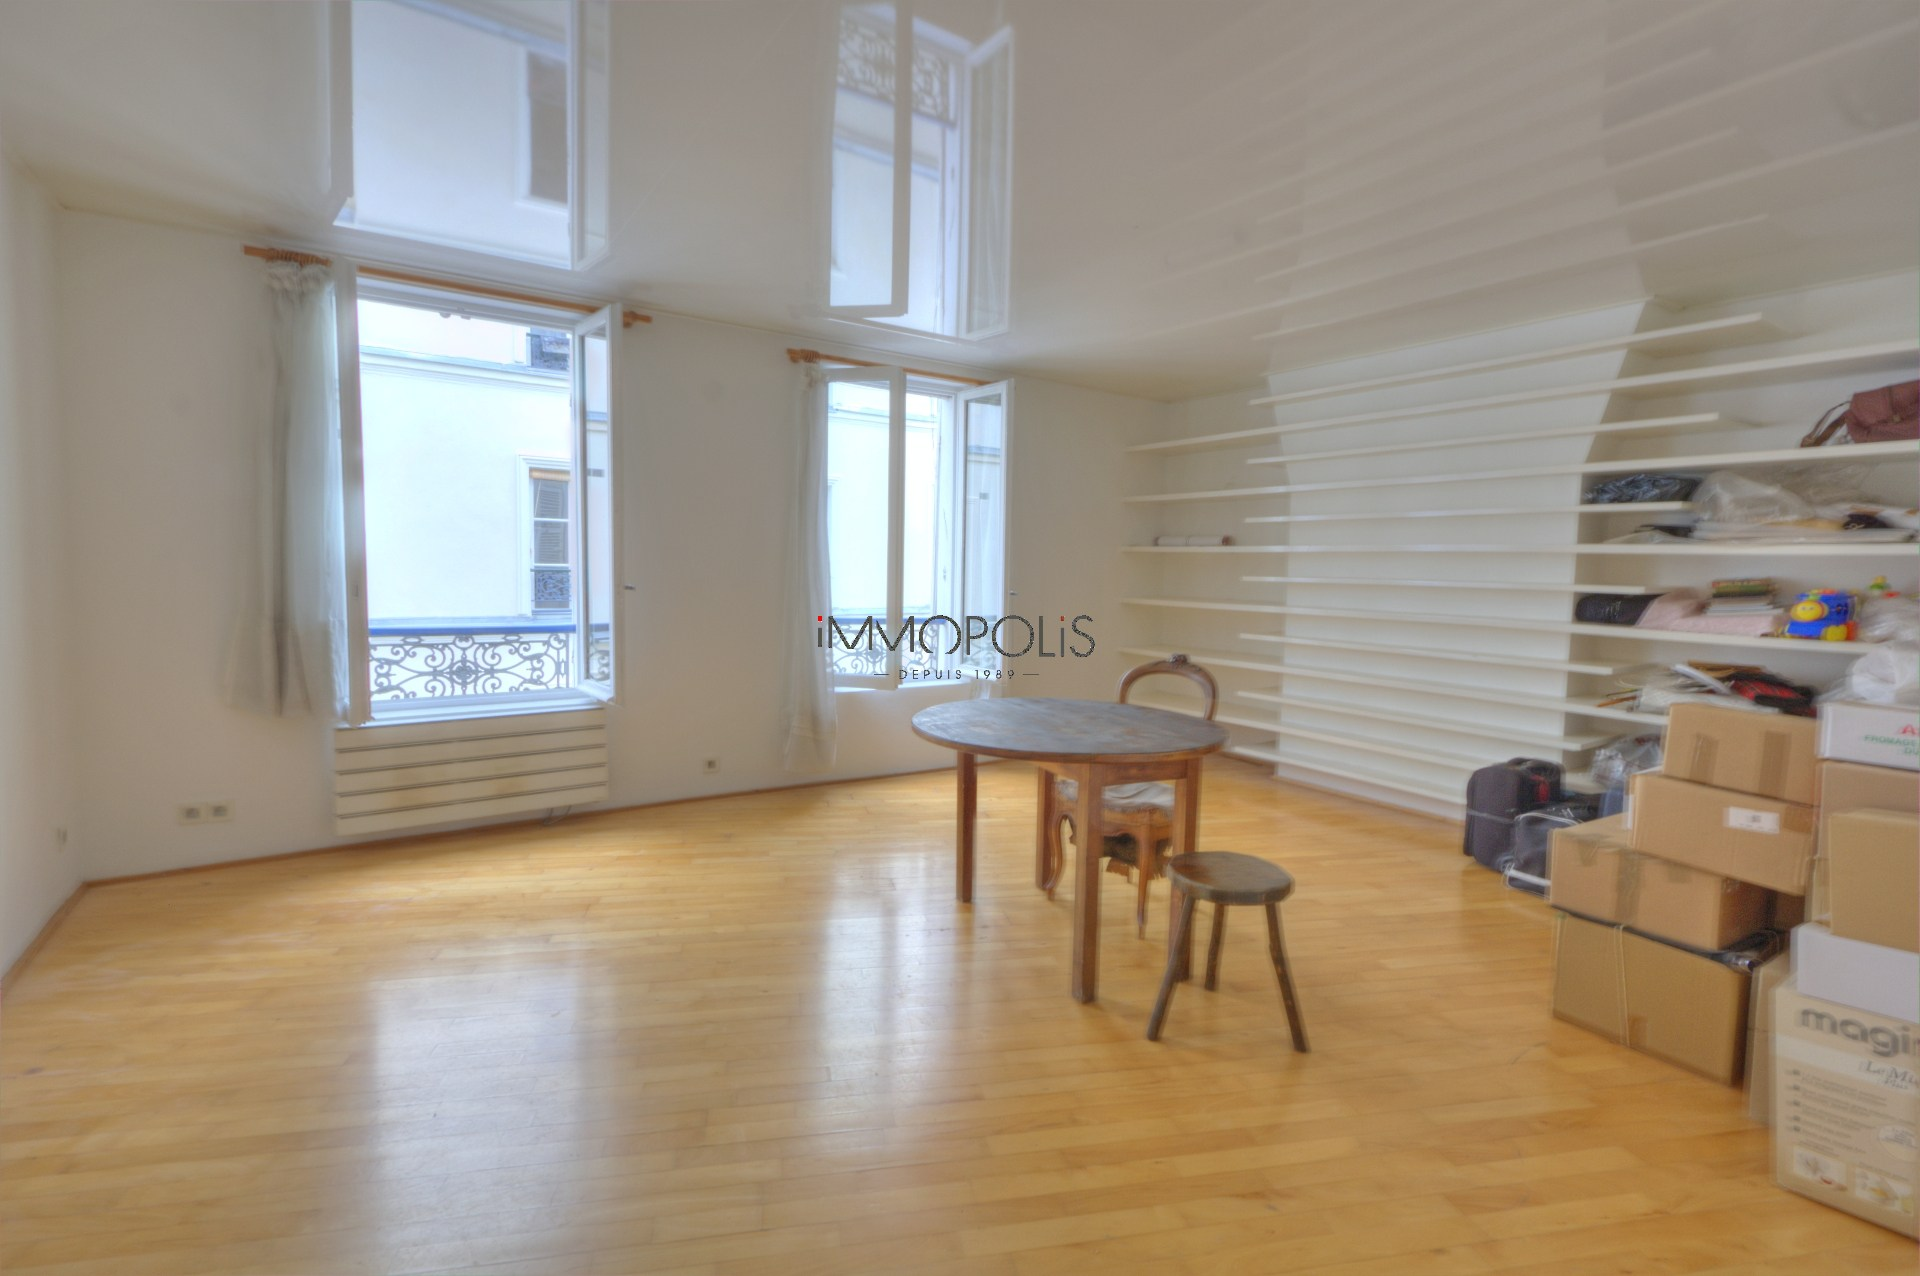 In the heart of the abbesses, rue Berthe, beautiful 2 rooms with perfect, in good condition, crossing on quiet street and open courtyard! 8